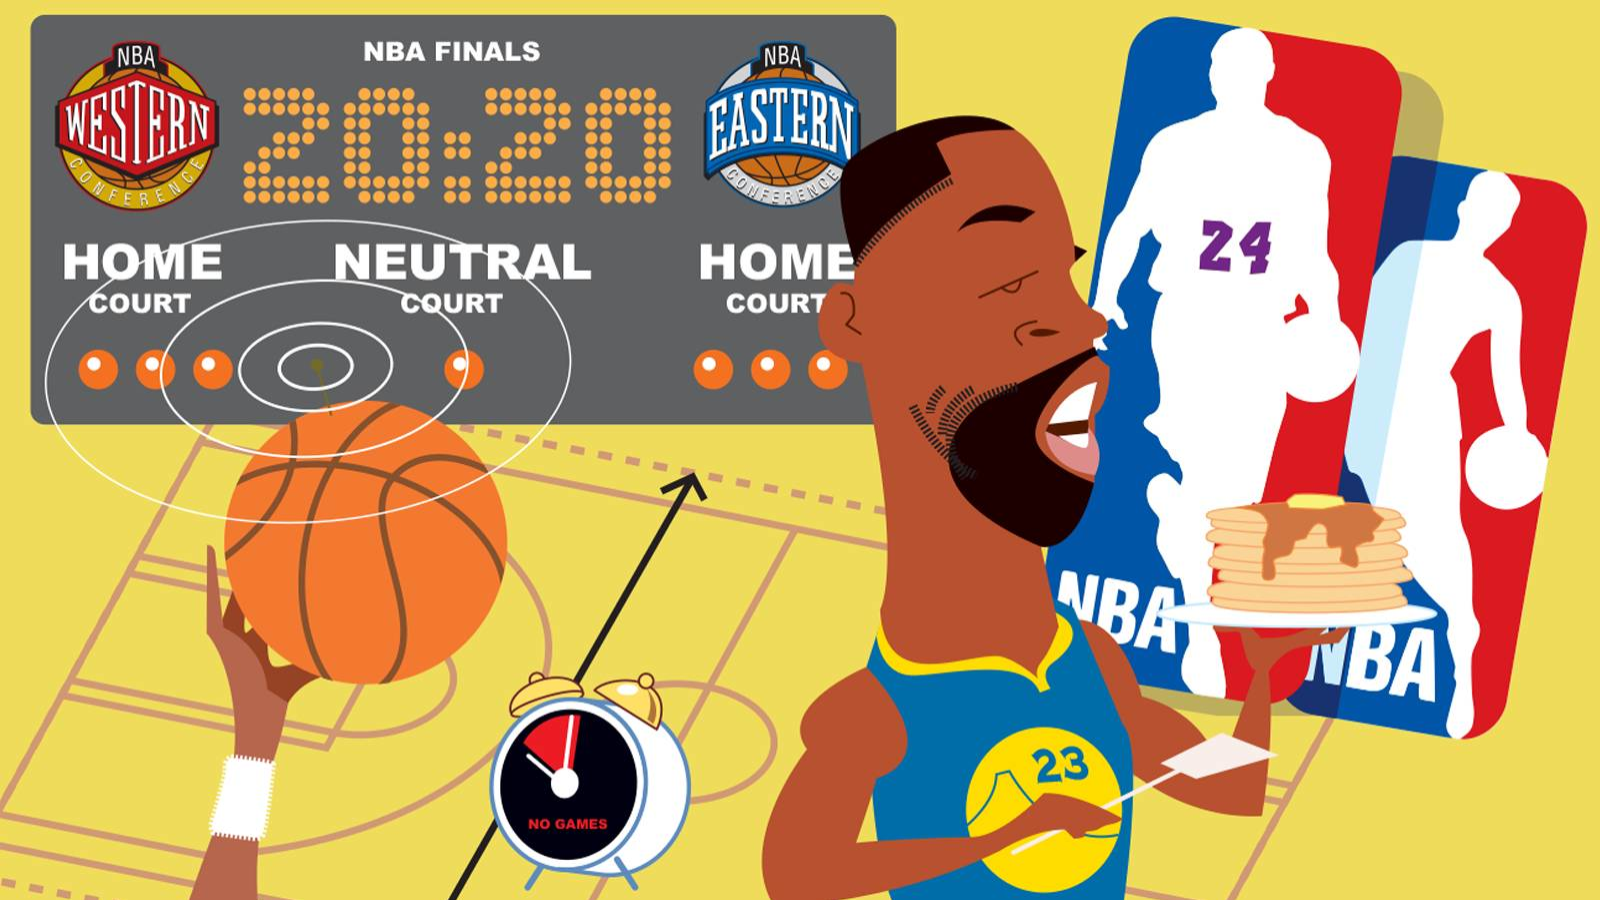 Super Fan sections and King of the Hill? Bold ideas to re-invent NBA for 2020s